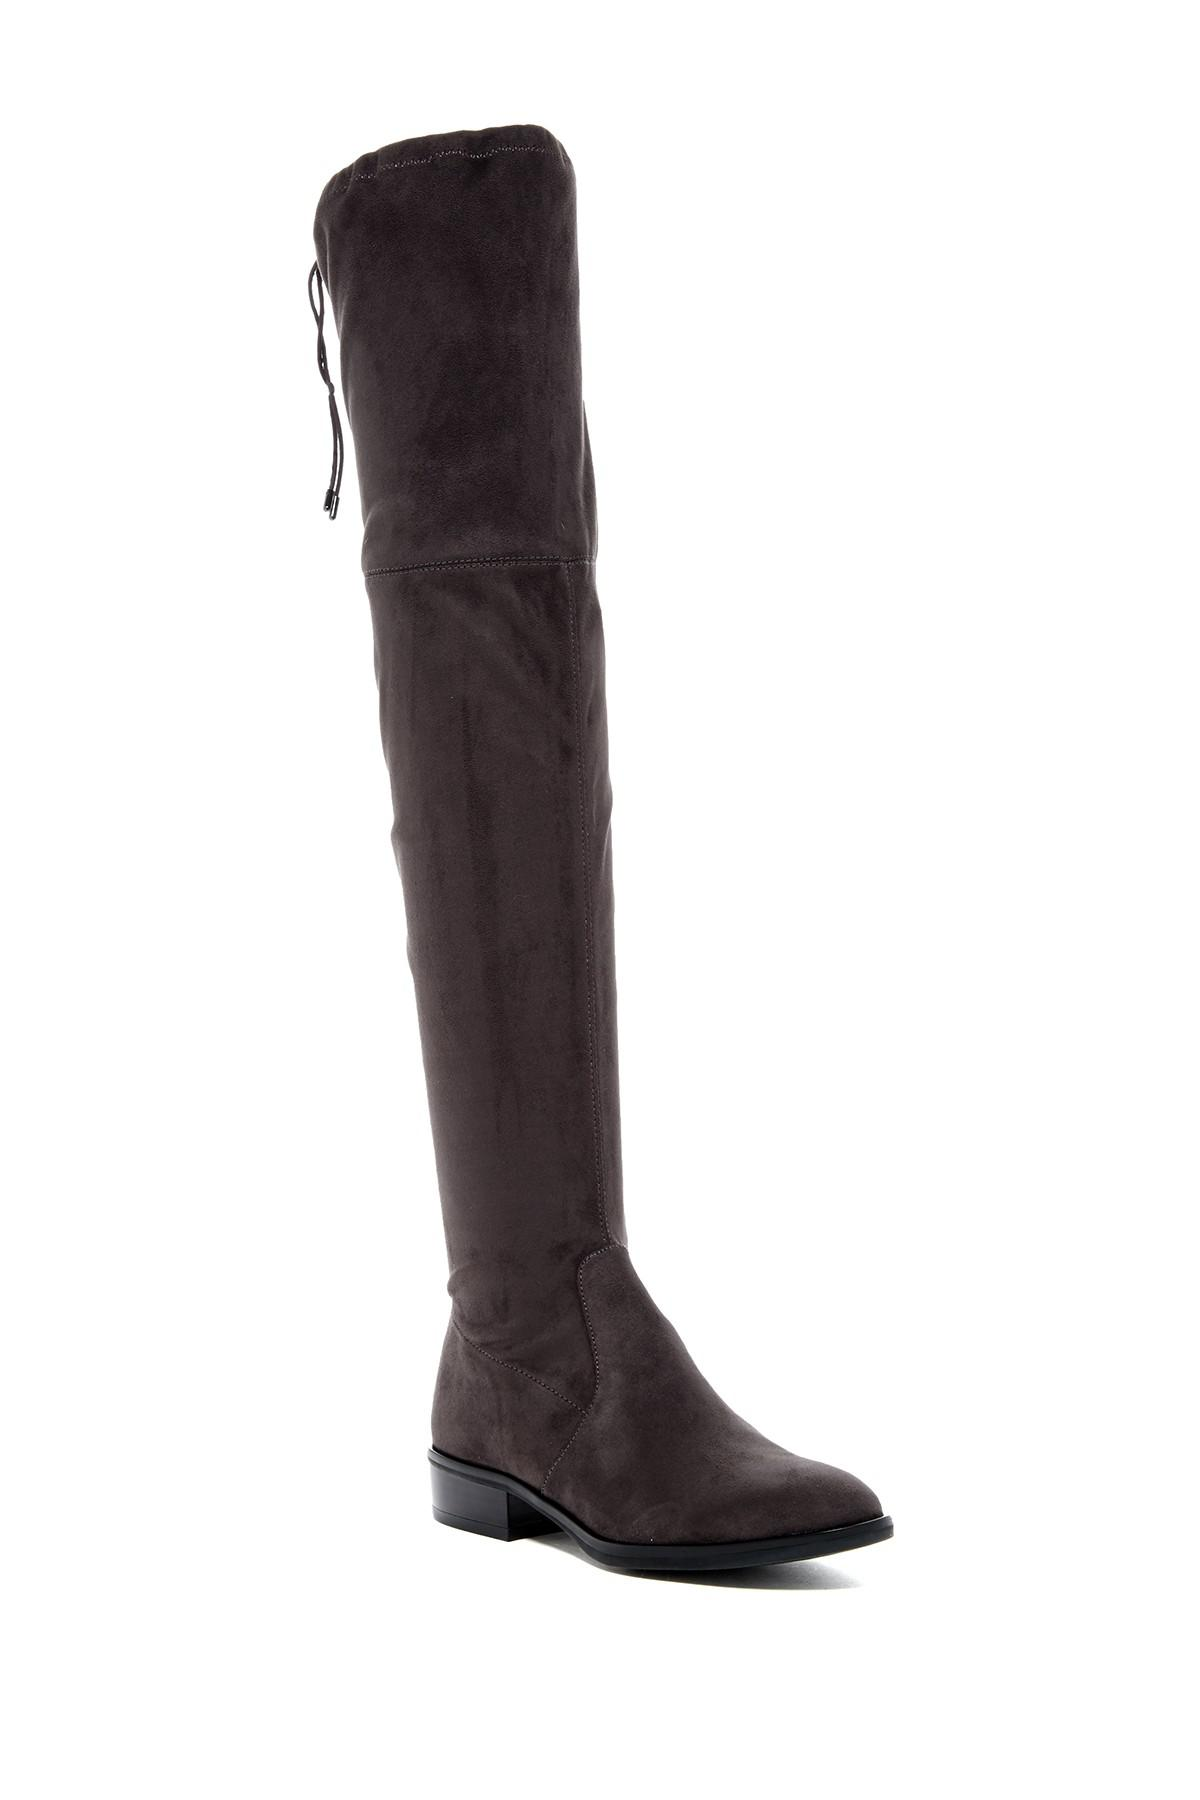 11deb3a6283 Lyst - Sam Edelman Paloma Over-the-knee Boot in Gray